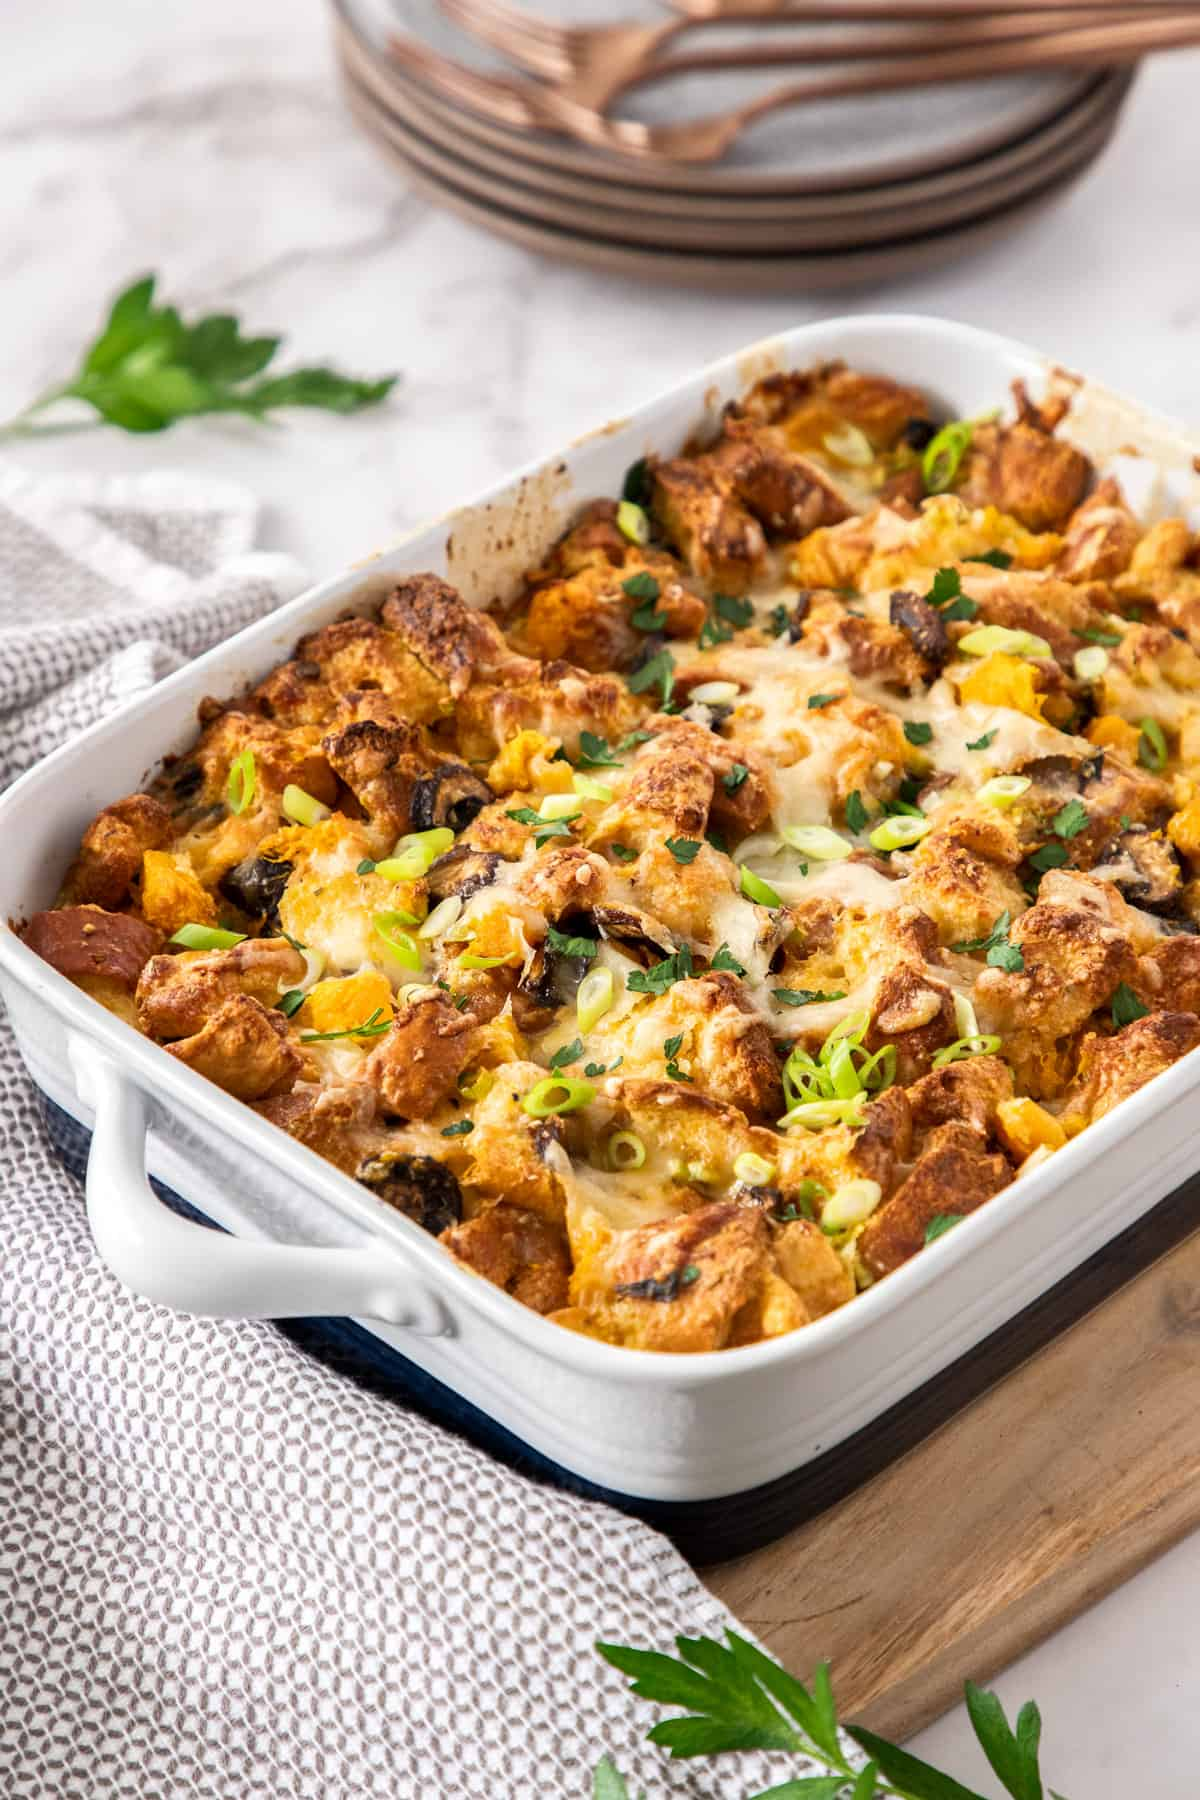 A white and blue baking dish full of savory bread pudding